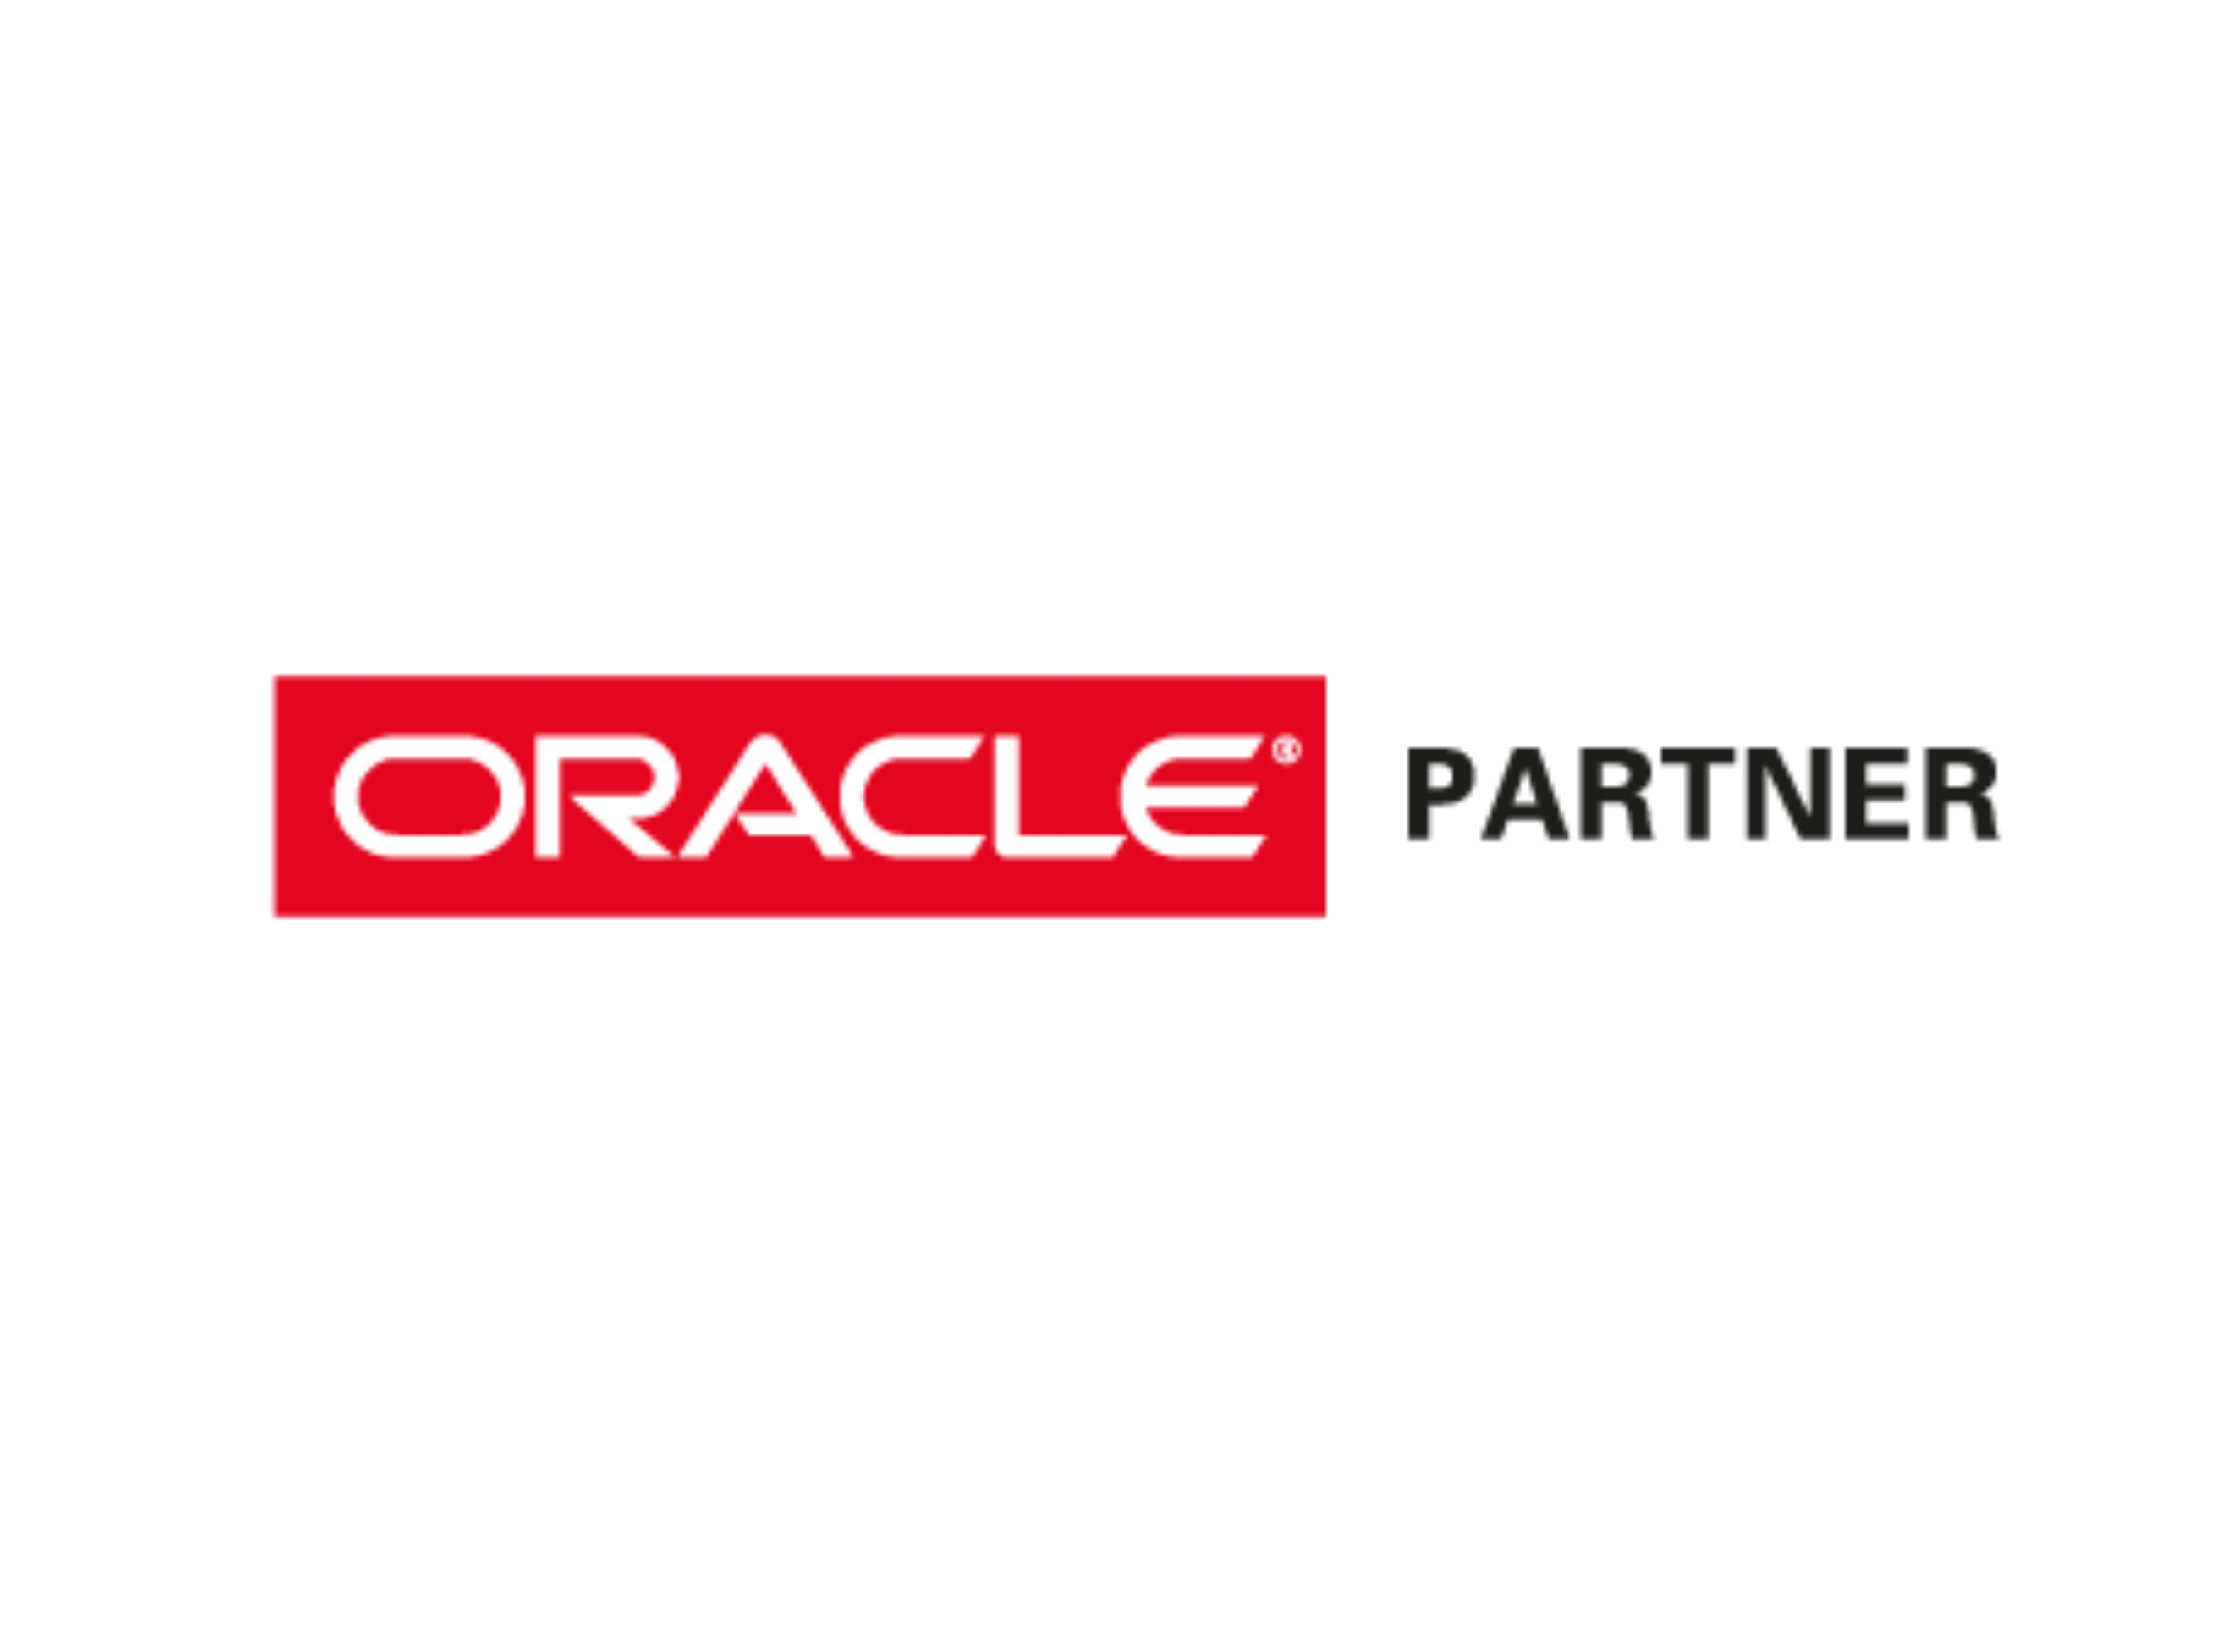 TriVers and Oracle Partnership